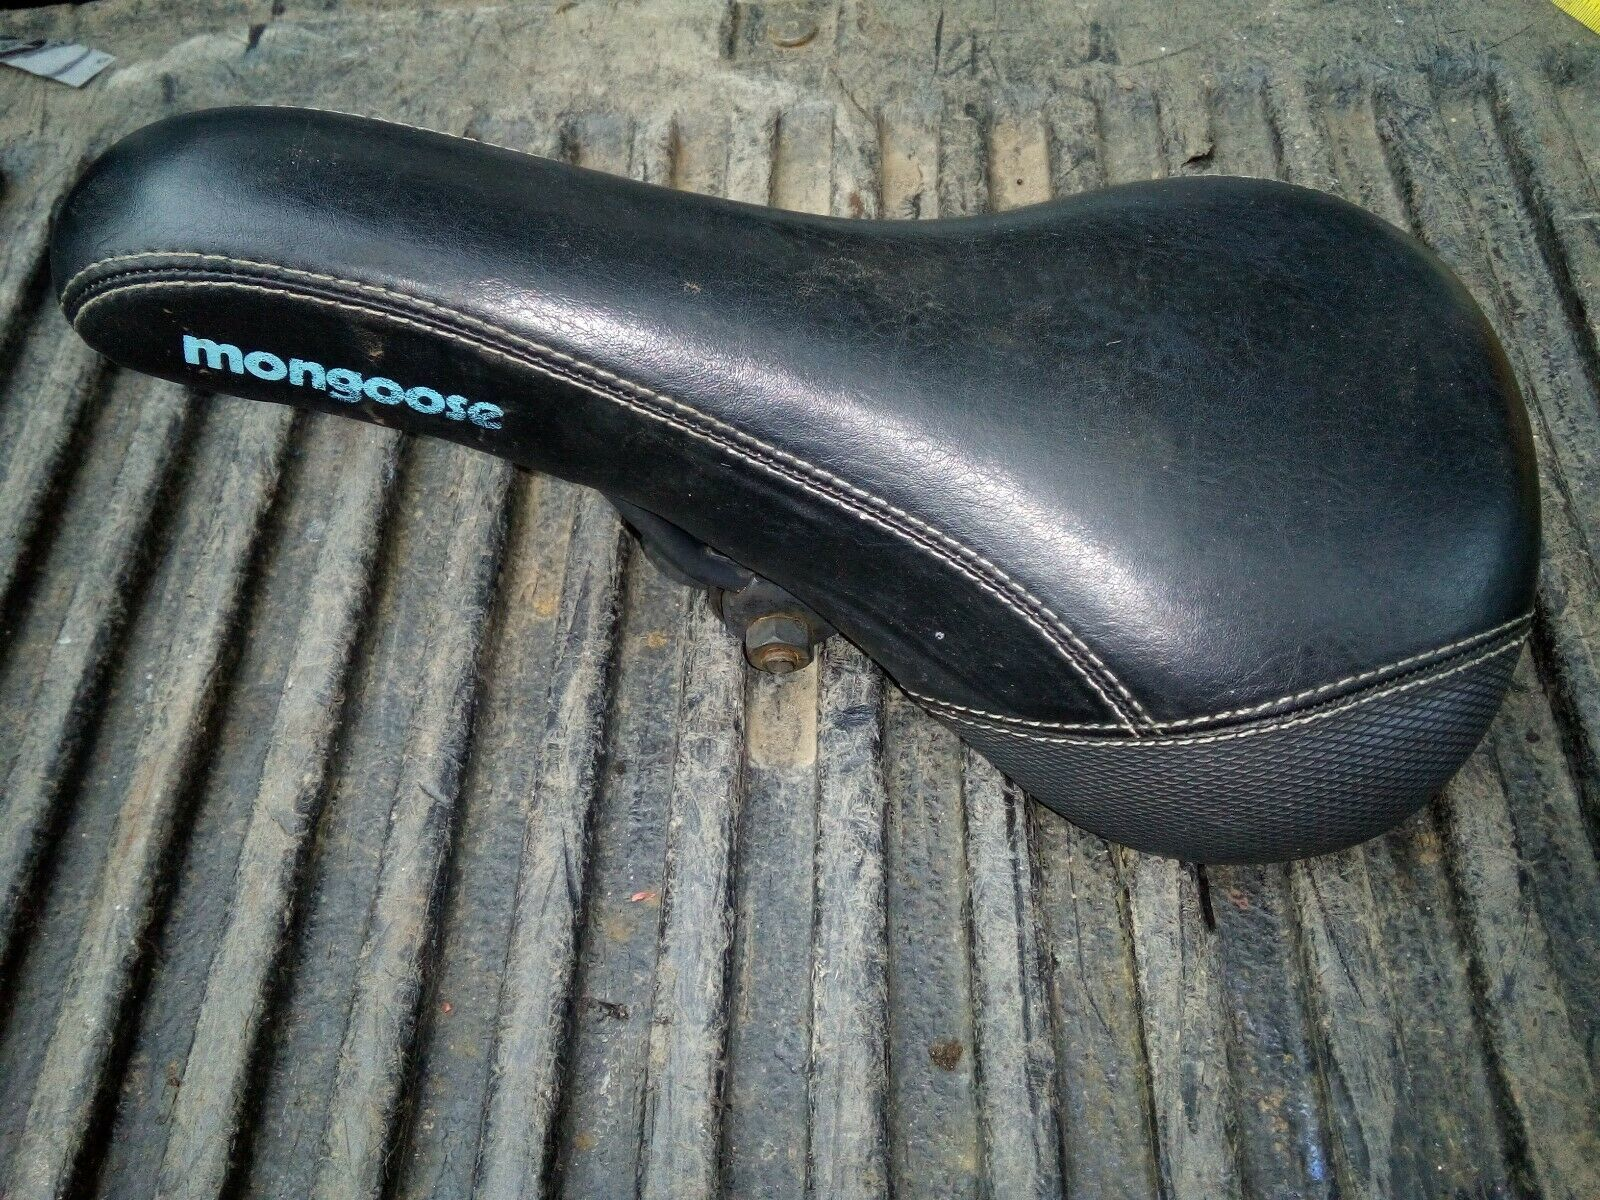 """9QQ46 MONGOOSE BIKE SEAT, 10-3/4"""" X 6-1/4"""" X 3"""", FOR 7/8"""" POST, VERY GOOD COND - $7.91"""